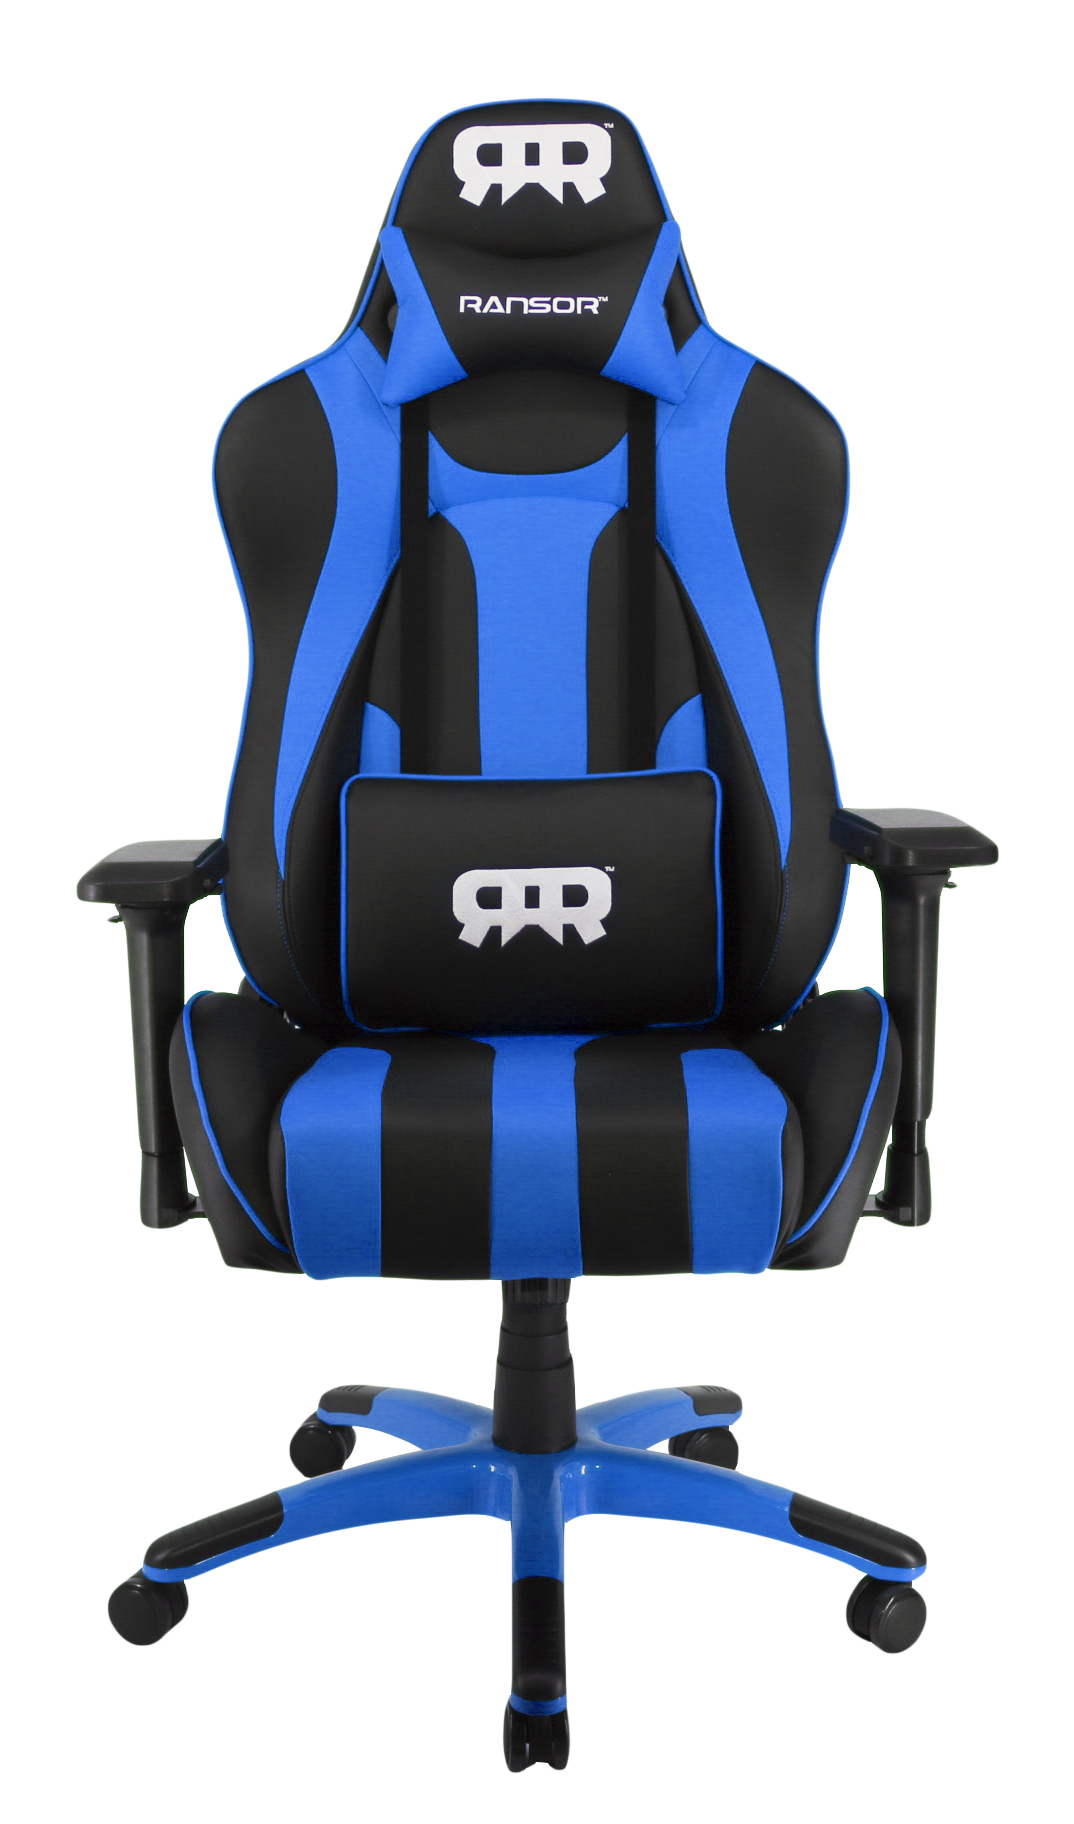 Cloud 9 Gaming Chair Ransor Gaming Hero Chair